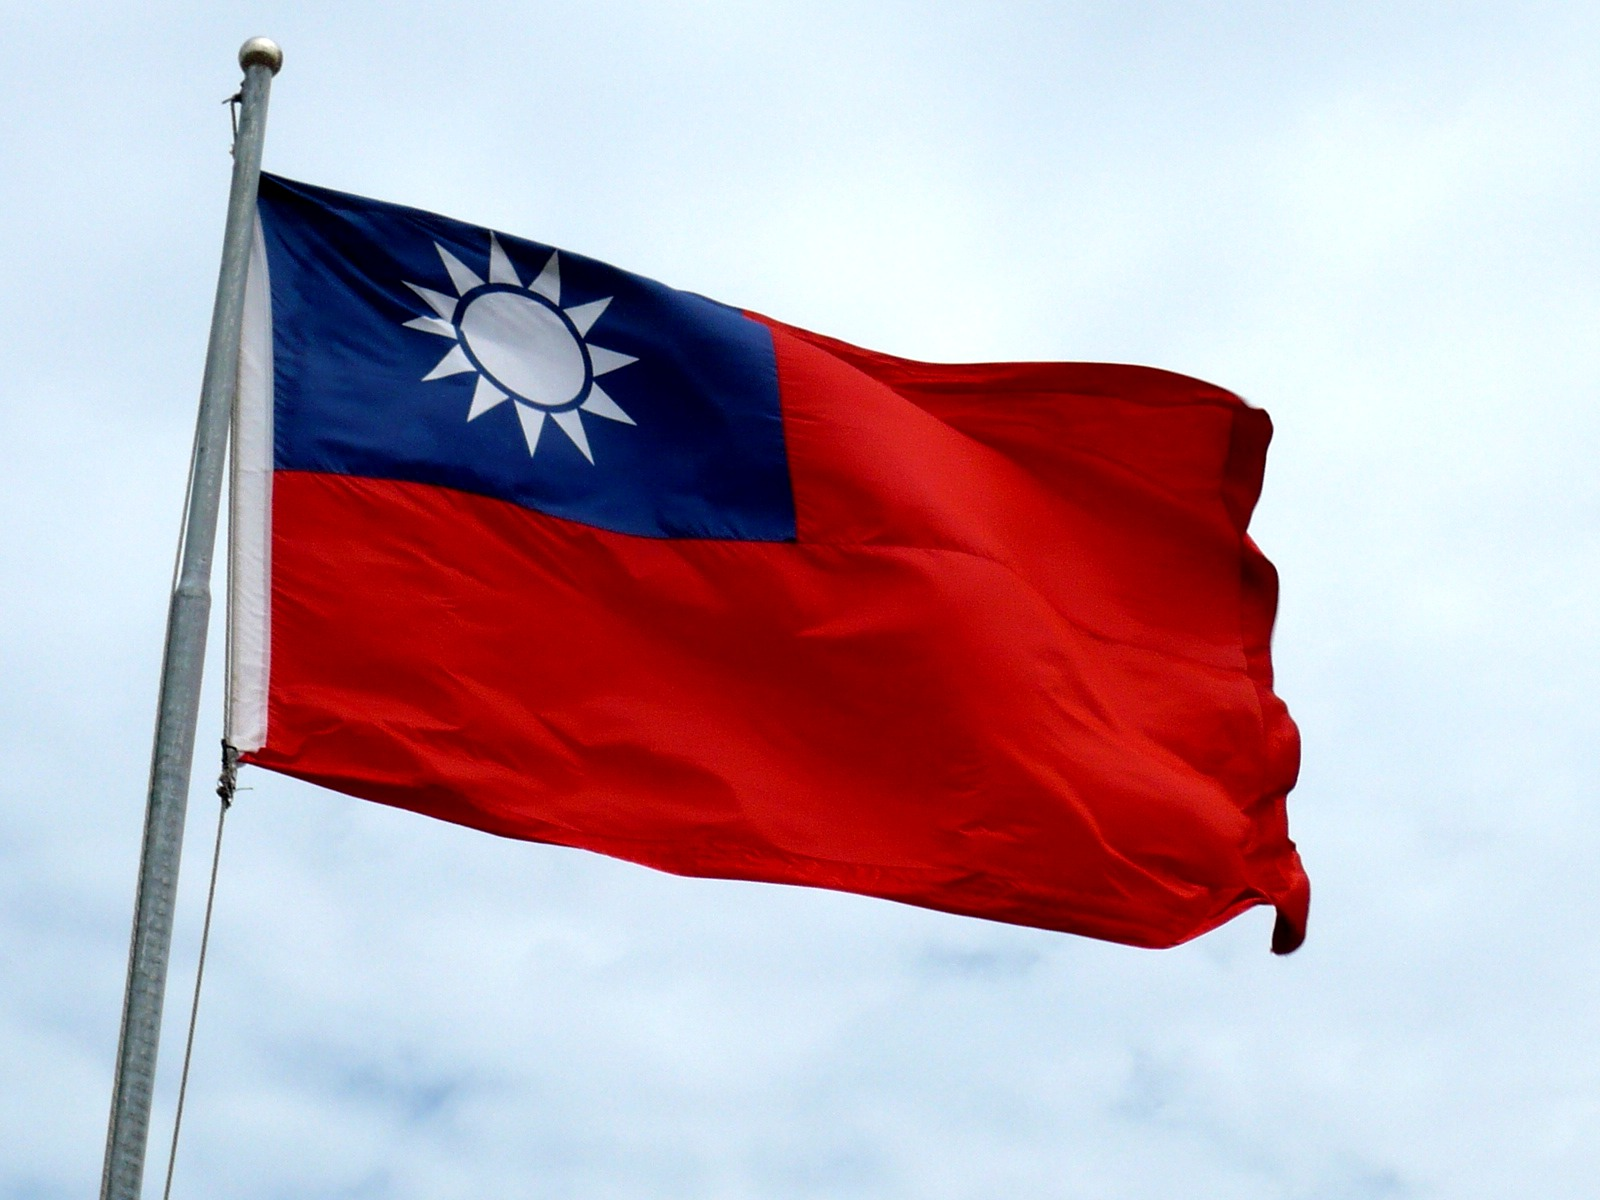 China threatens to block Taiwan's international space after legislators visit India